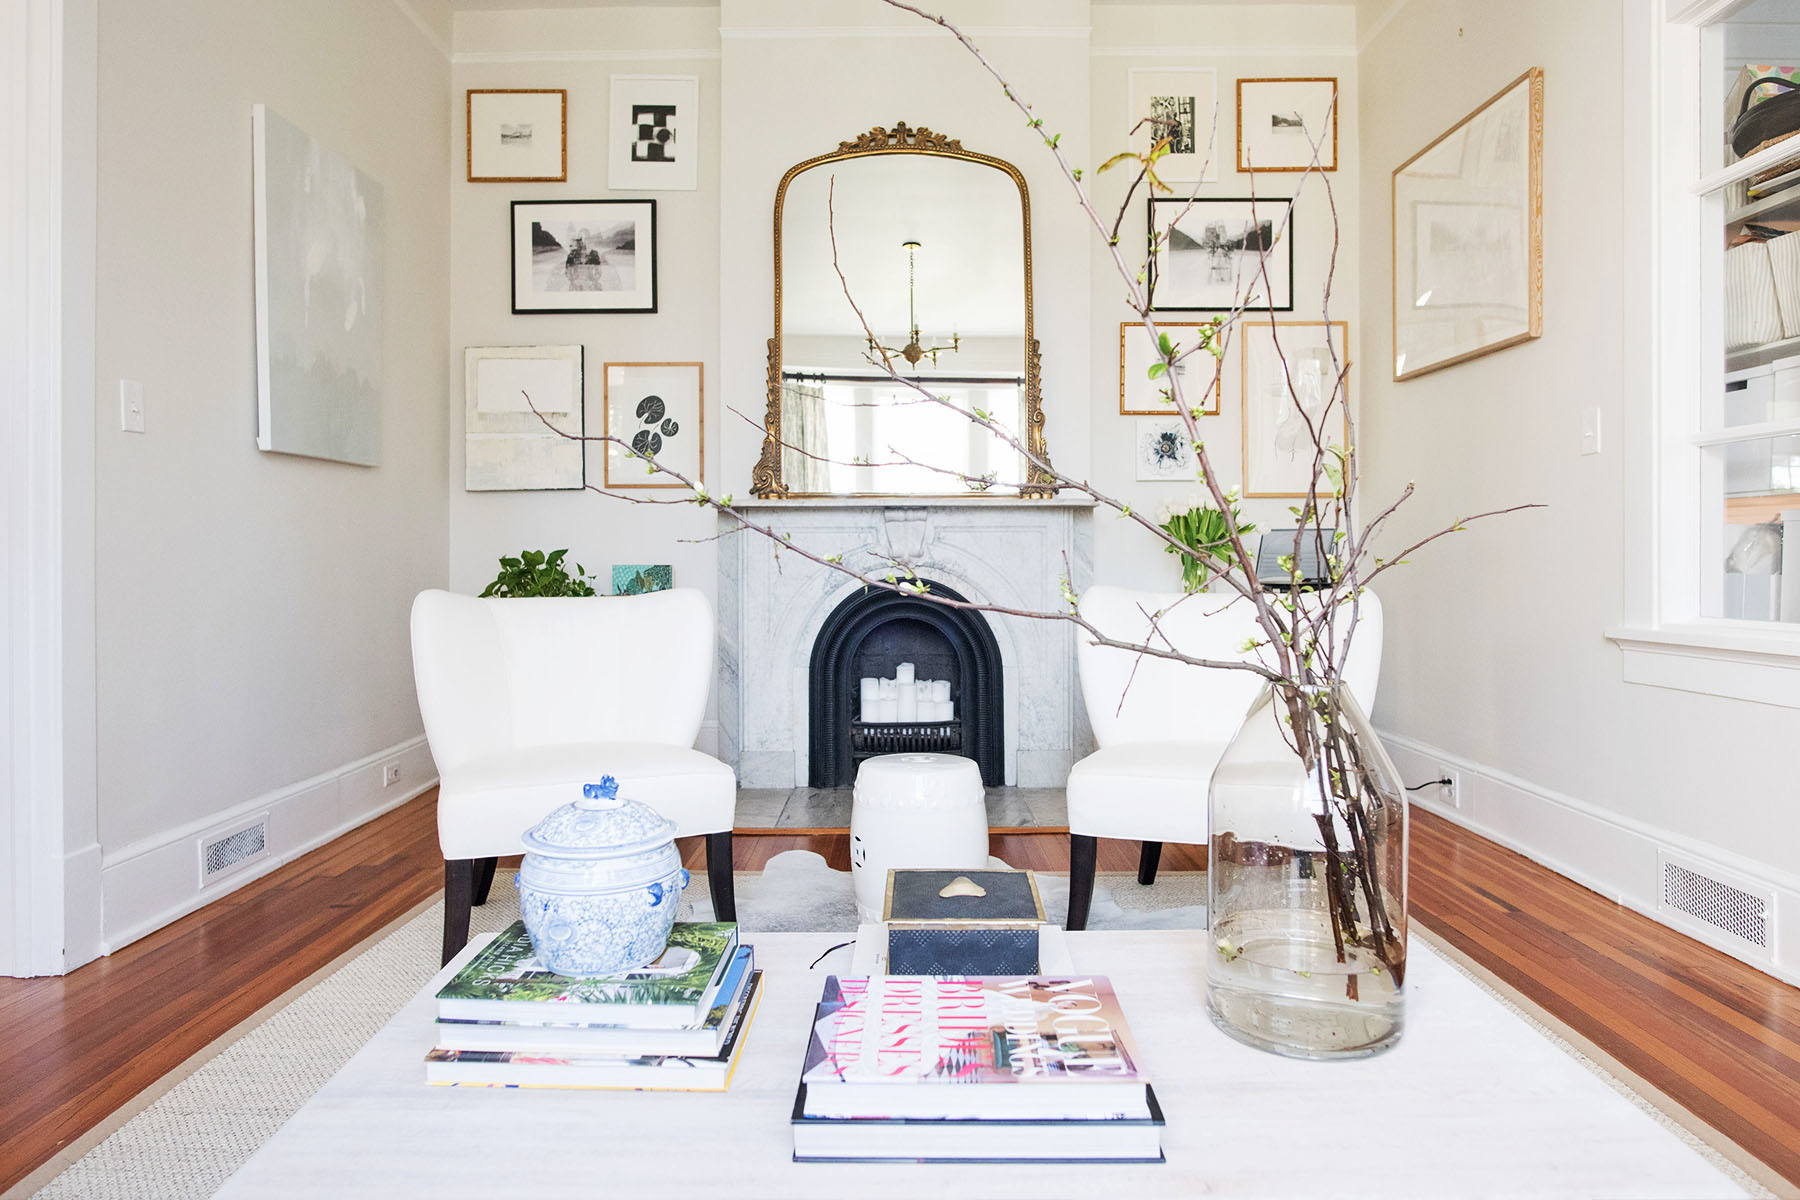 The family's sitting room harks back to its history.Anthropologie Mirror |Scott Antique Market Armchairs, upholstered inSchumacher Linen |Wayfair Stool |Target Vase |HomegoodsAssorted Picture Frames.